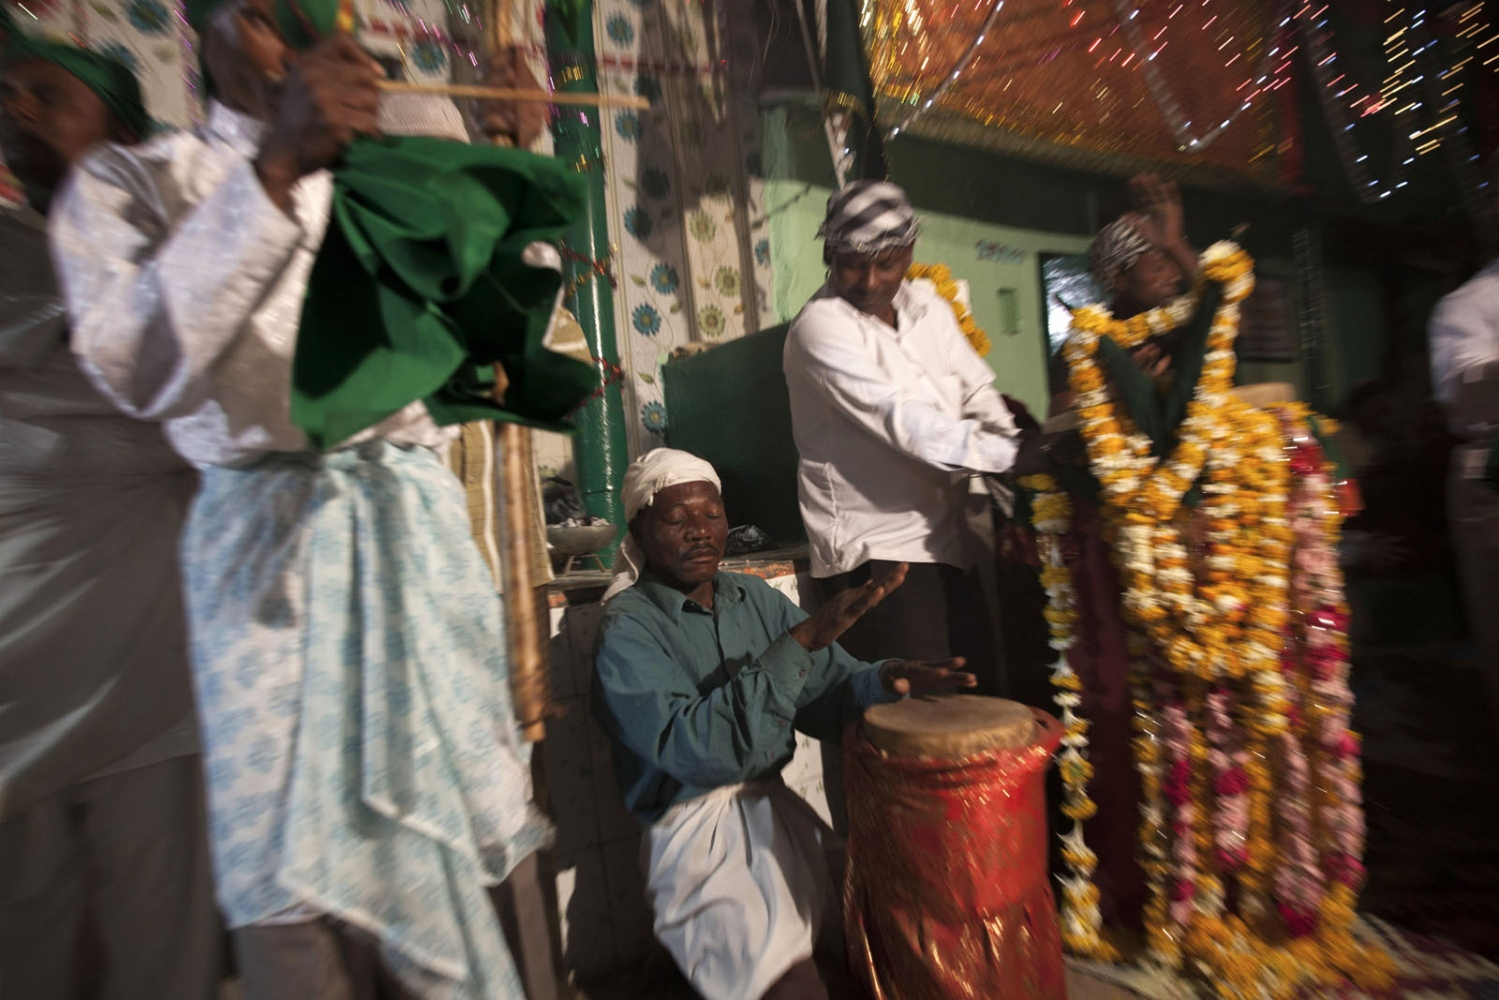 During the annual celebration of Urs, the anniversary of their saint Bava Gor, the Sidi play music, sing and dance all night until morning. Bedi, India